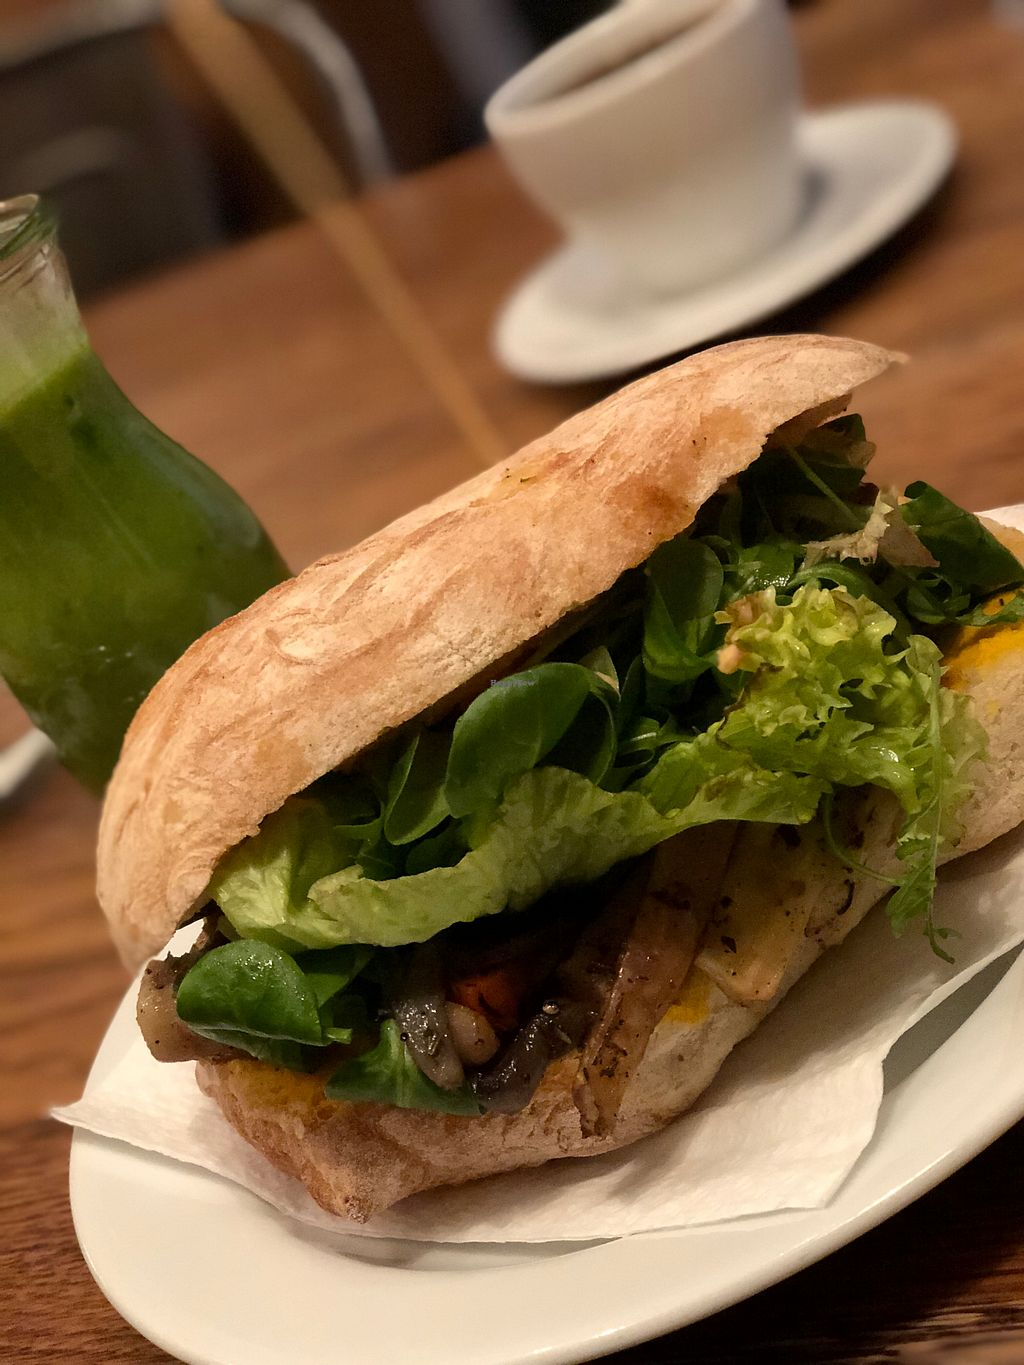 "Photo of Wesola Cafe  by <a href=""/members/profile/Sophiapalmqvist"">Sophiapalmqvist</a> <br/>Grilled veggies sandwich  <br/> January 21, 2018  - <a href='/contact/abuse/image/66343/349309'>Report</a>"